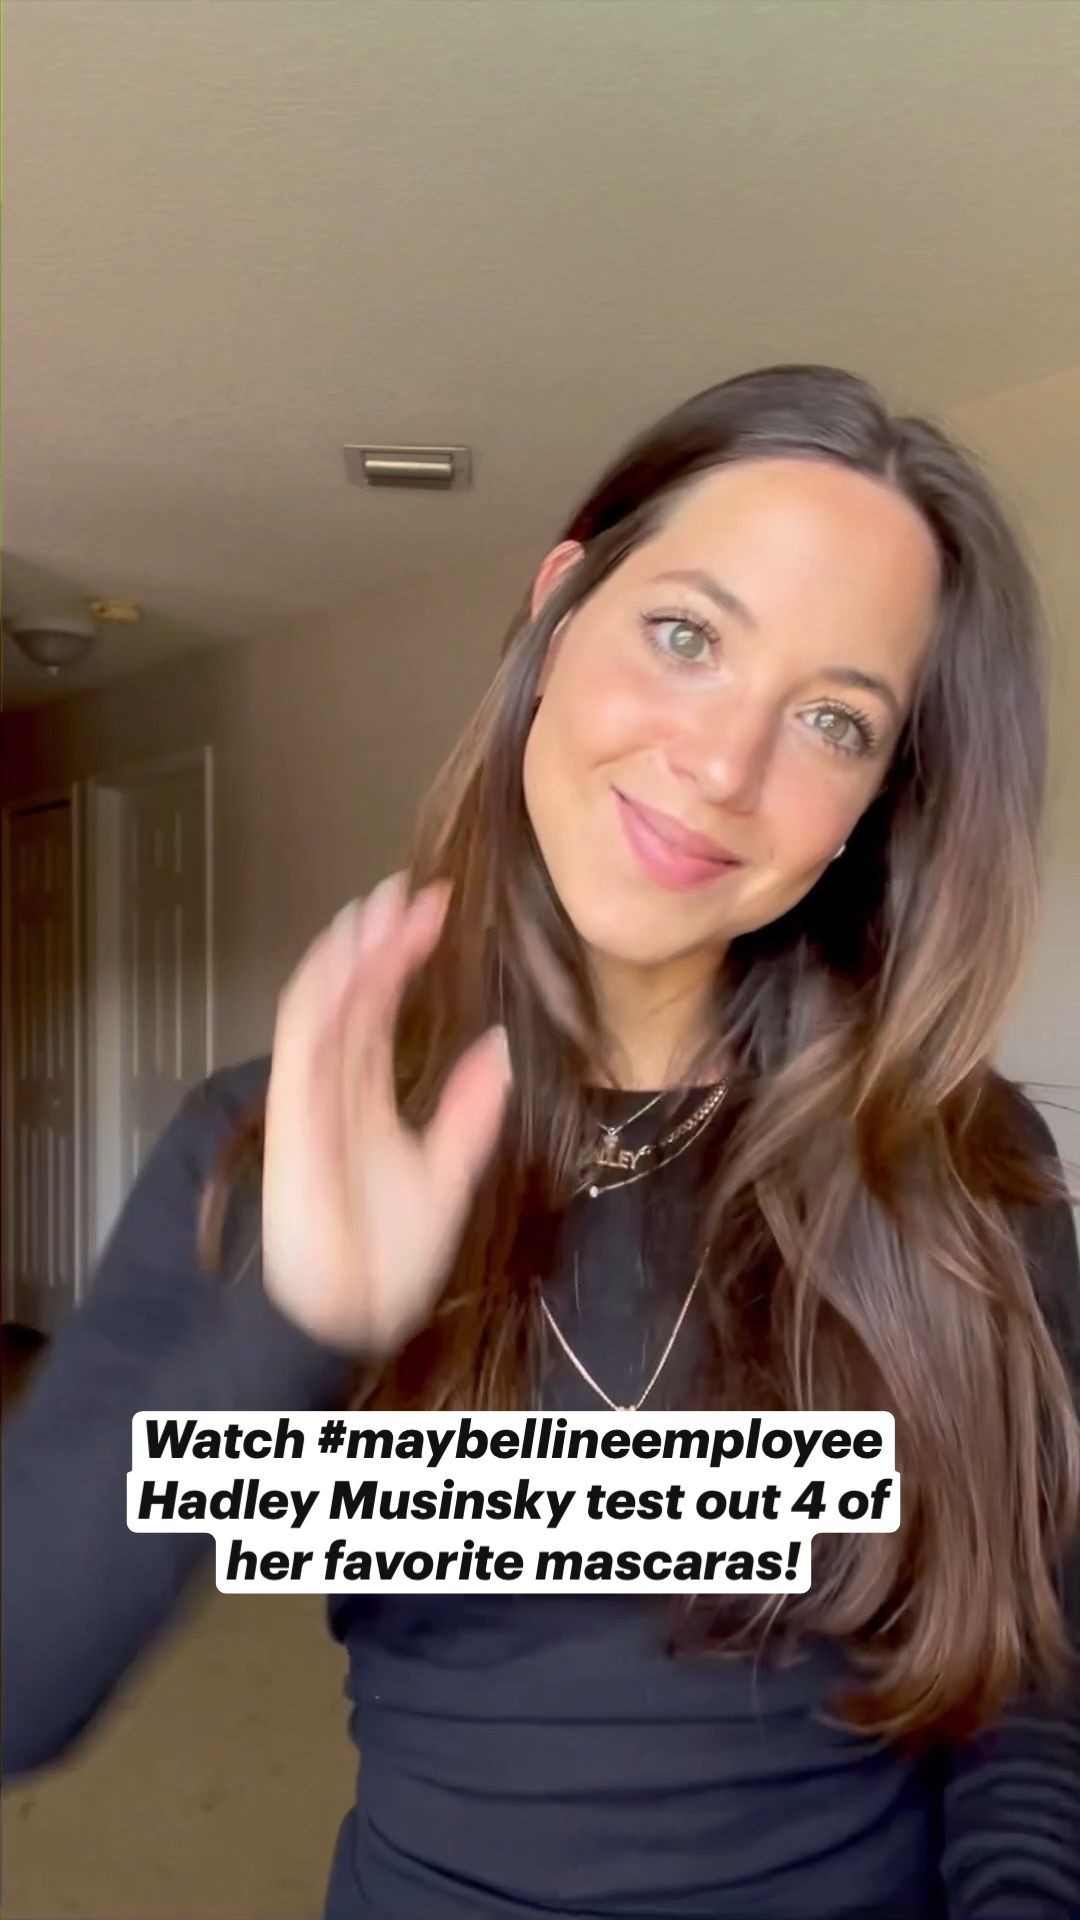 Mascara Monday with #maybellineemployee Hadley Musinsky